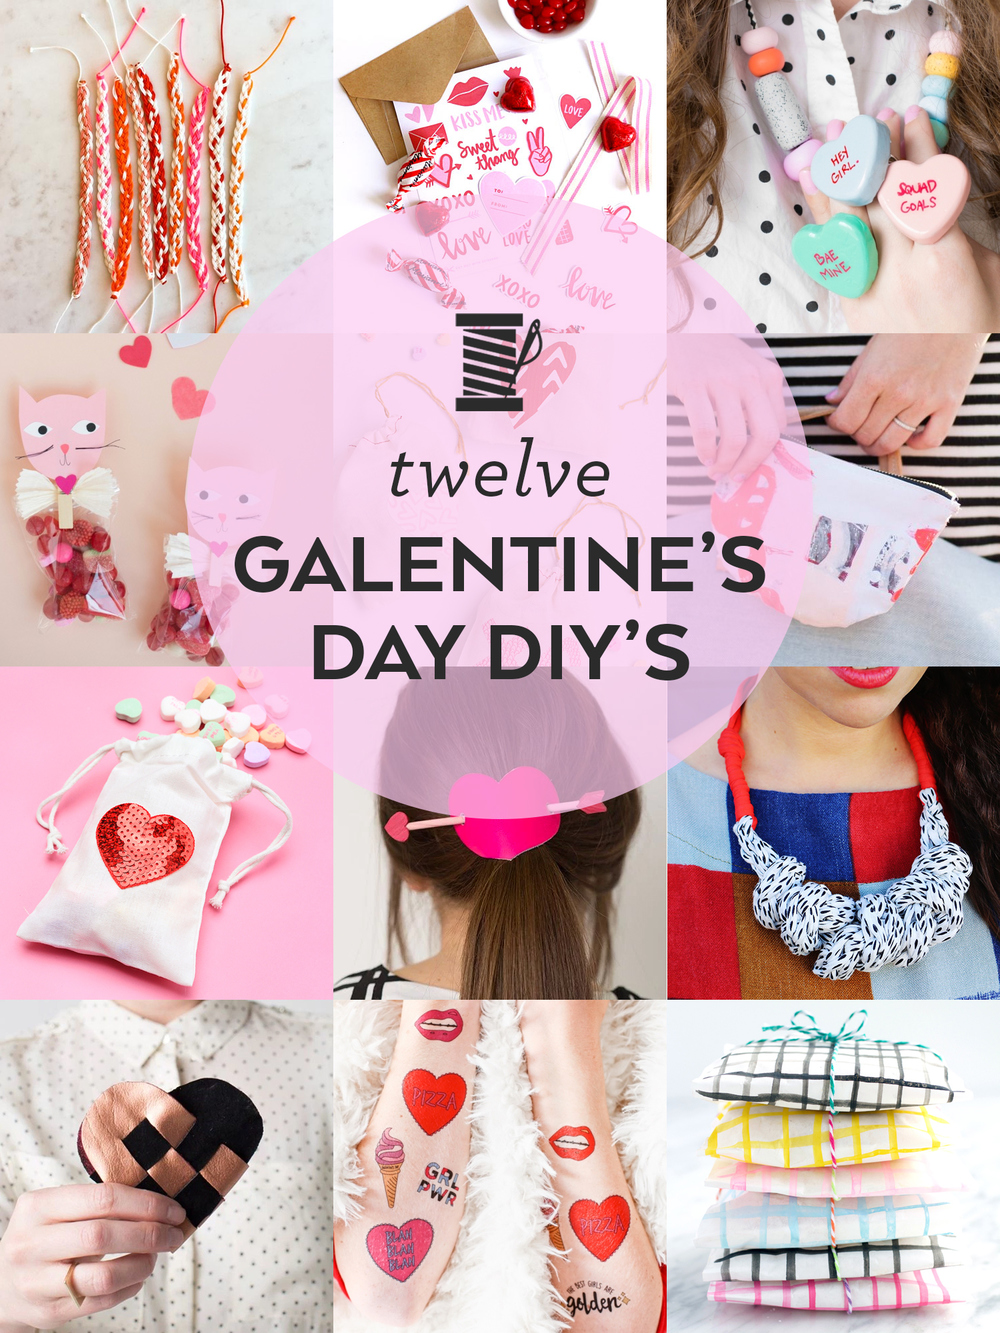 12 DIY's for Galentine's Day | Sew DIY